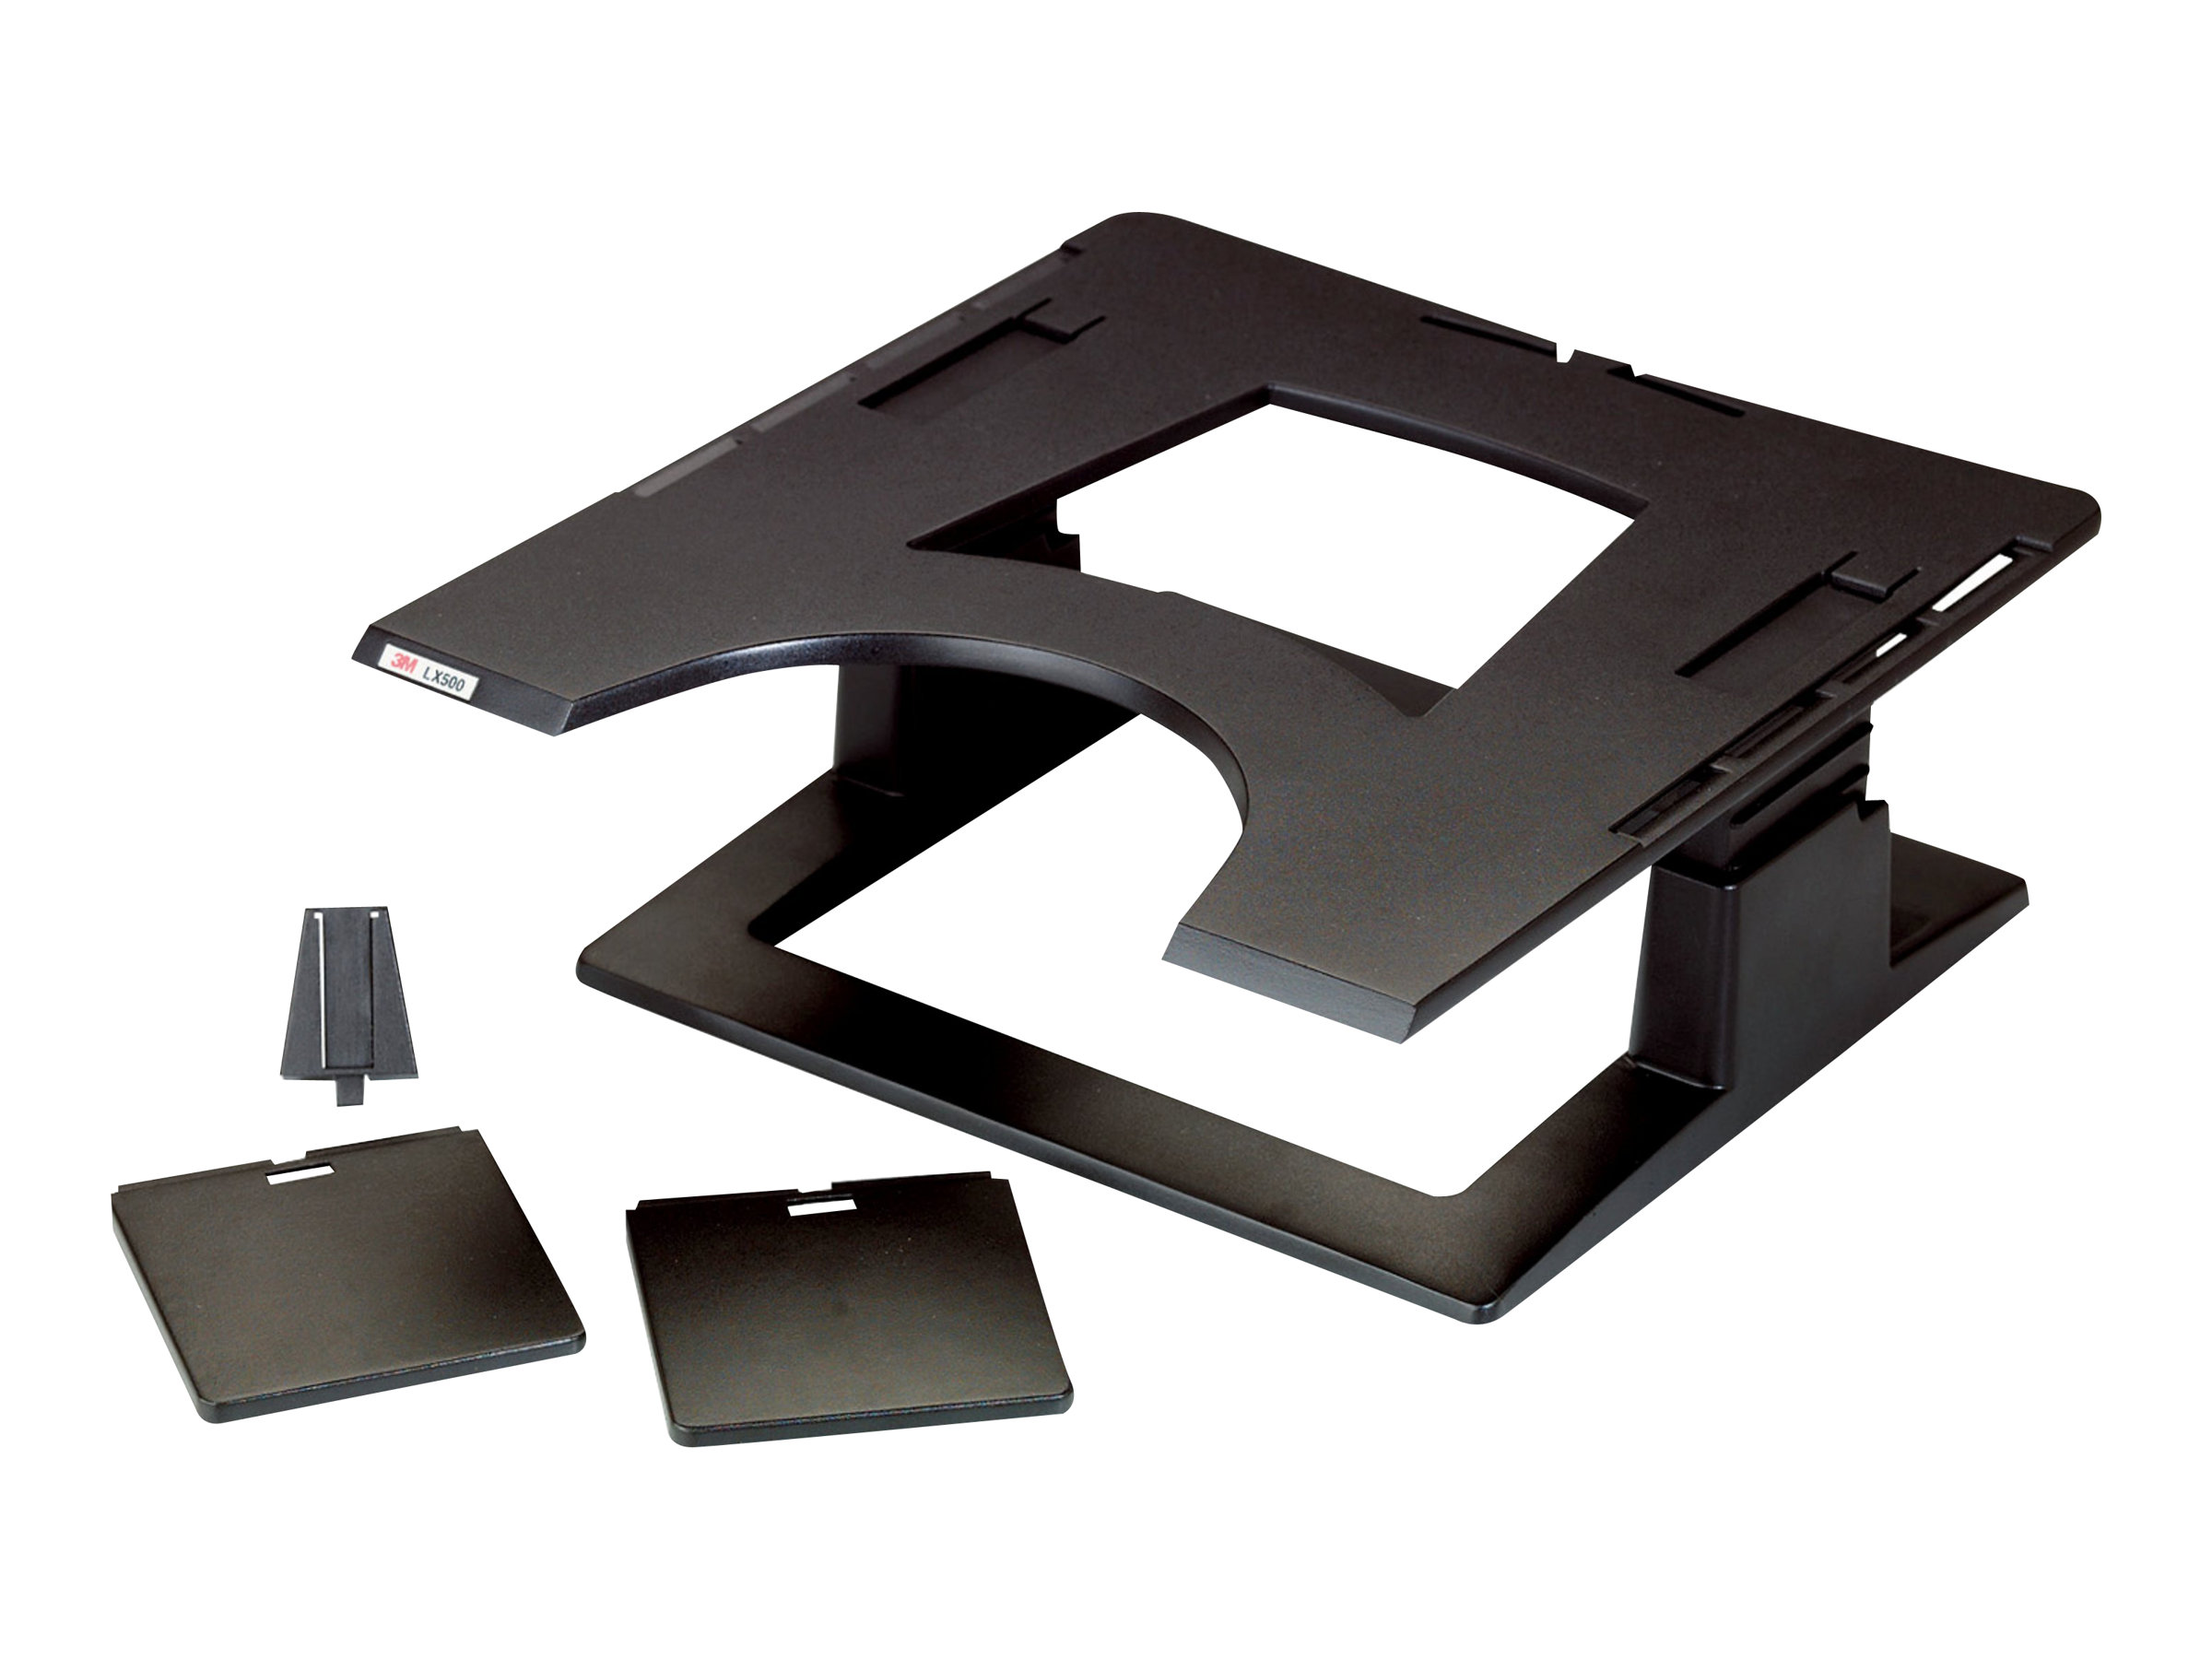 3M Adjustable Notebook Riser LX500 - Notebook-Plattform - Schwarz